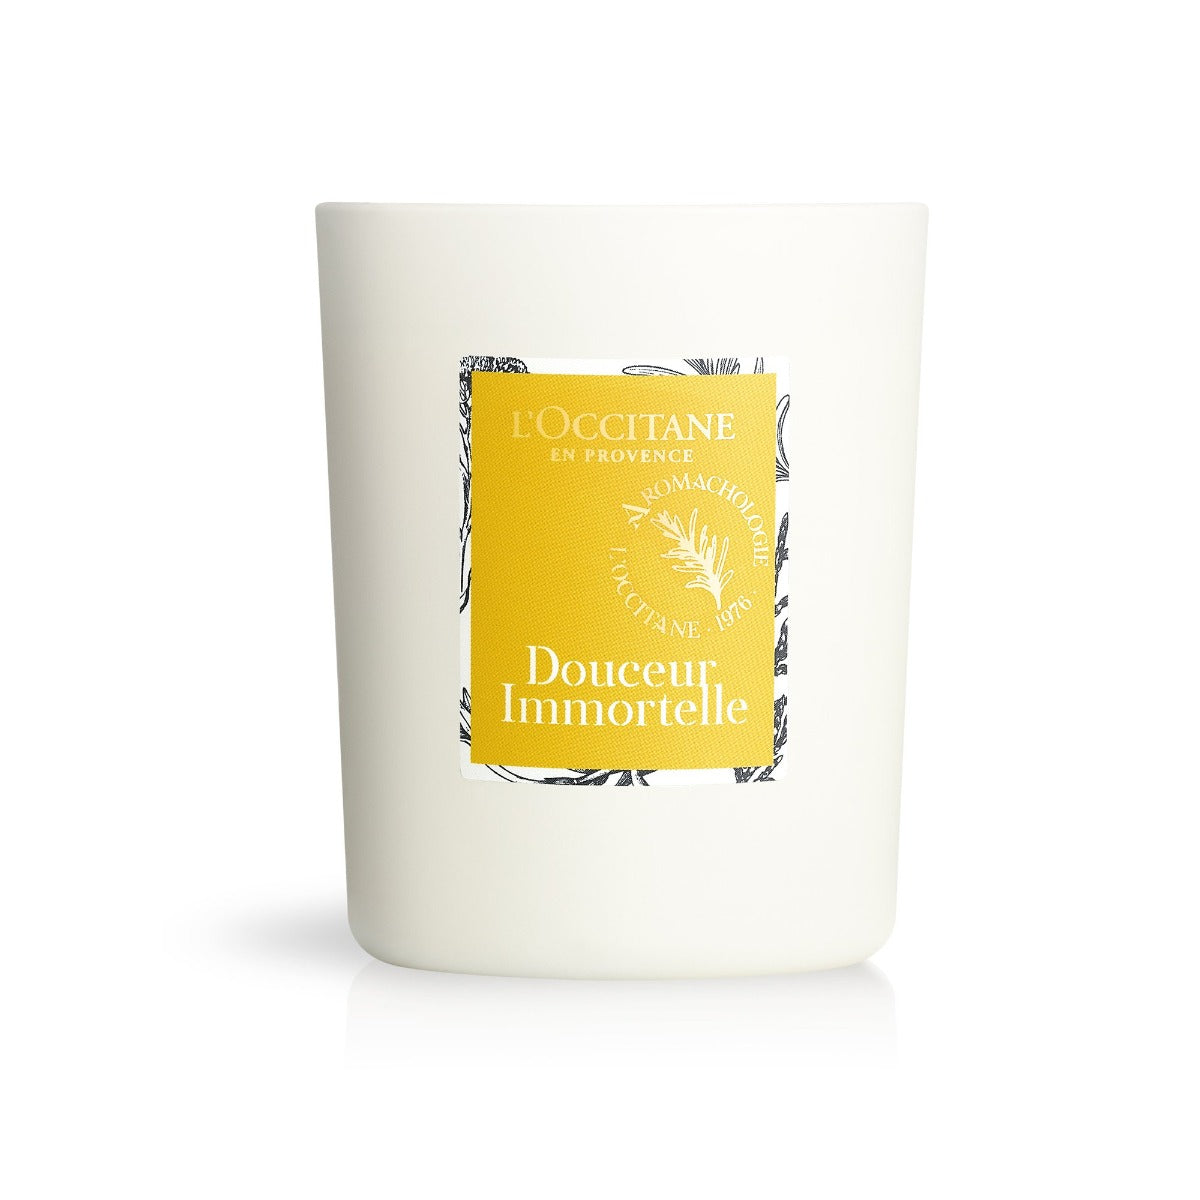 L'Occitane Douceor Immortelle Uplifting Candle